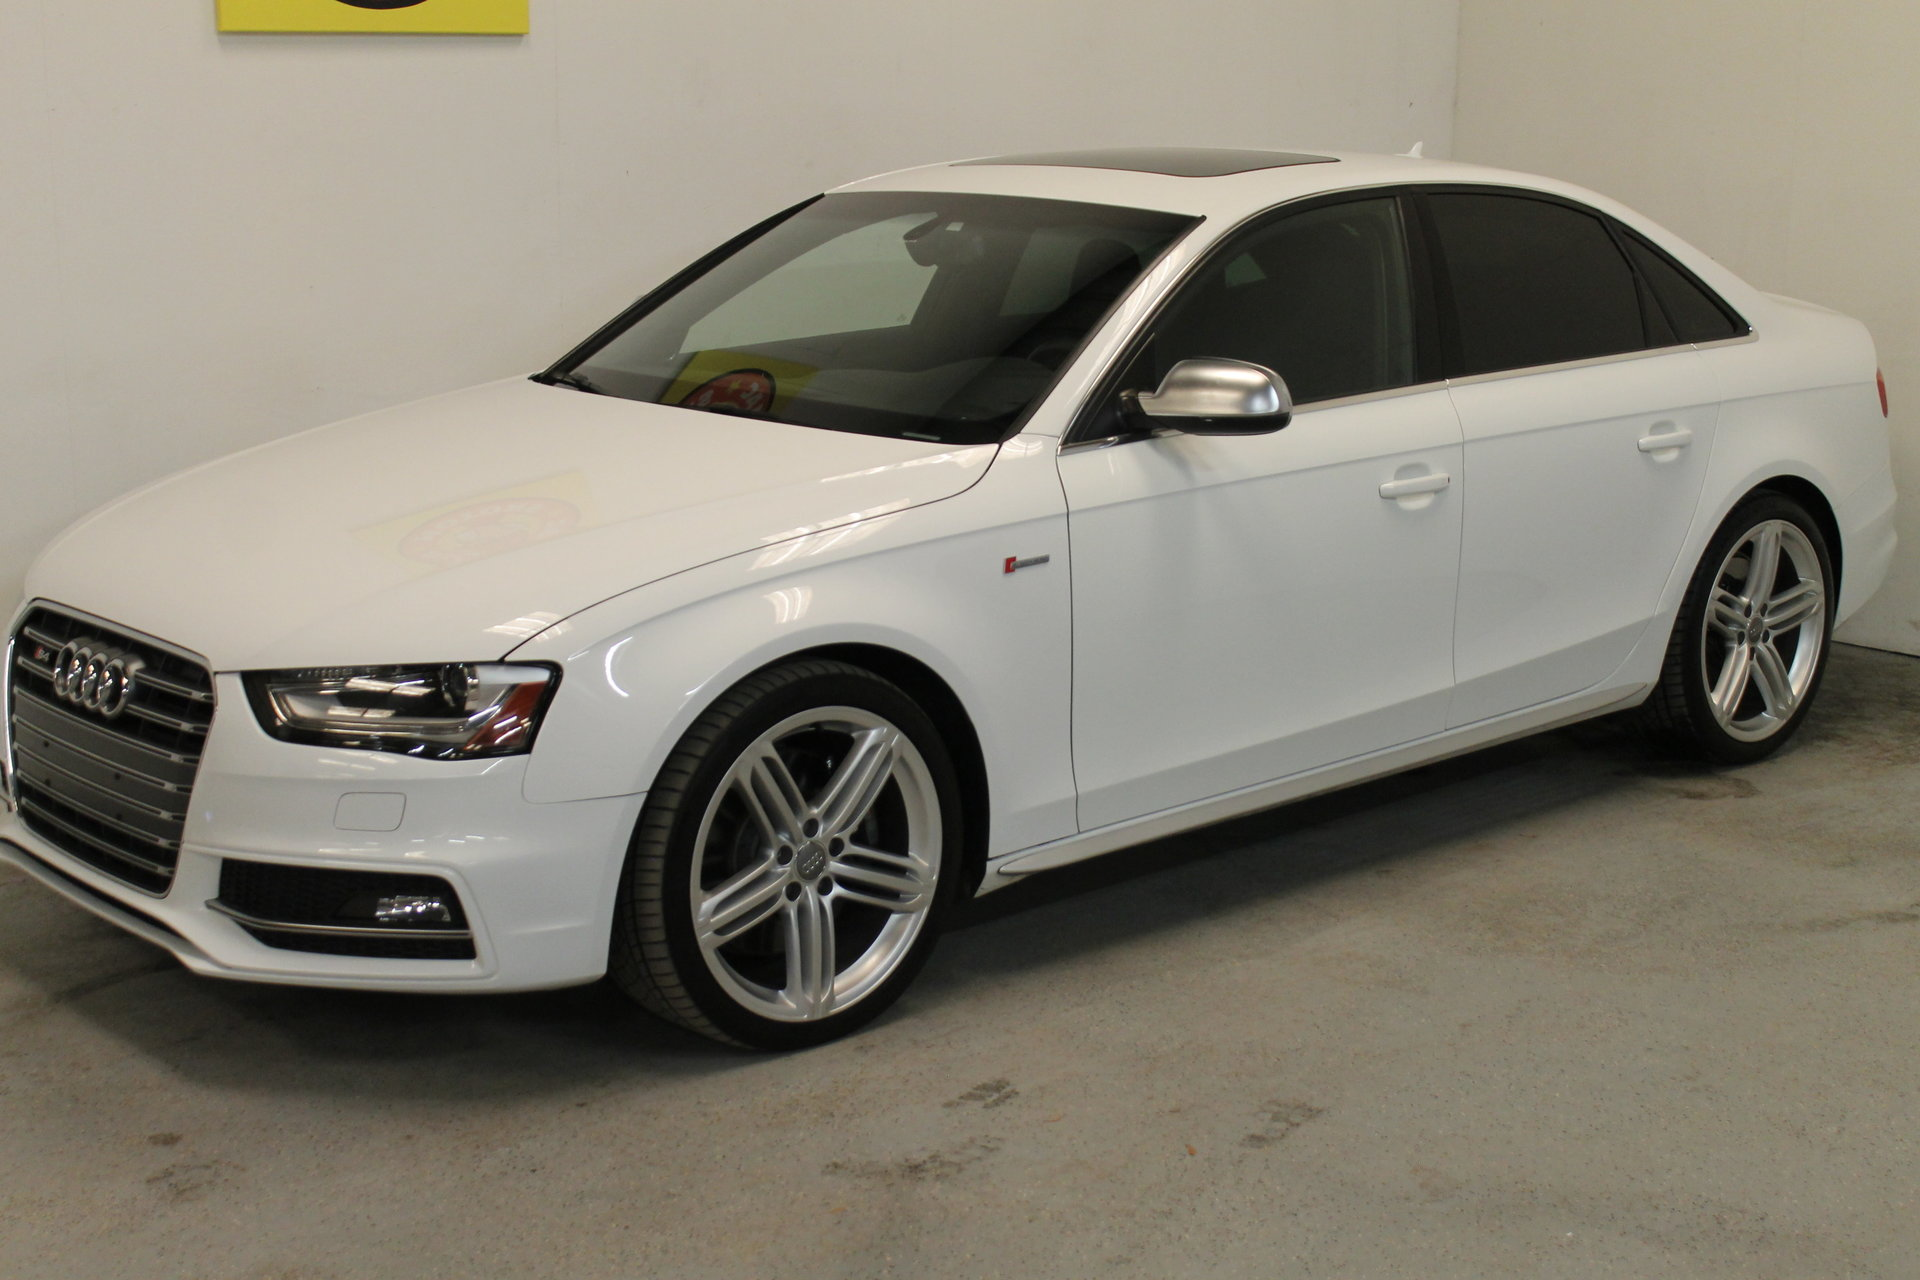 german audi sale post originally revisit july cars below site the conversion appeared for on avant our